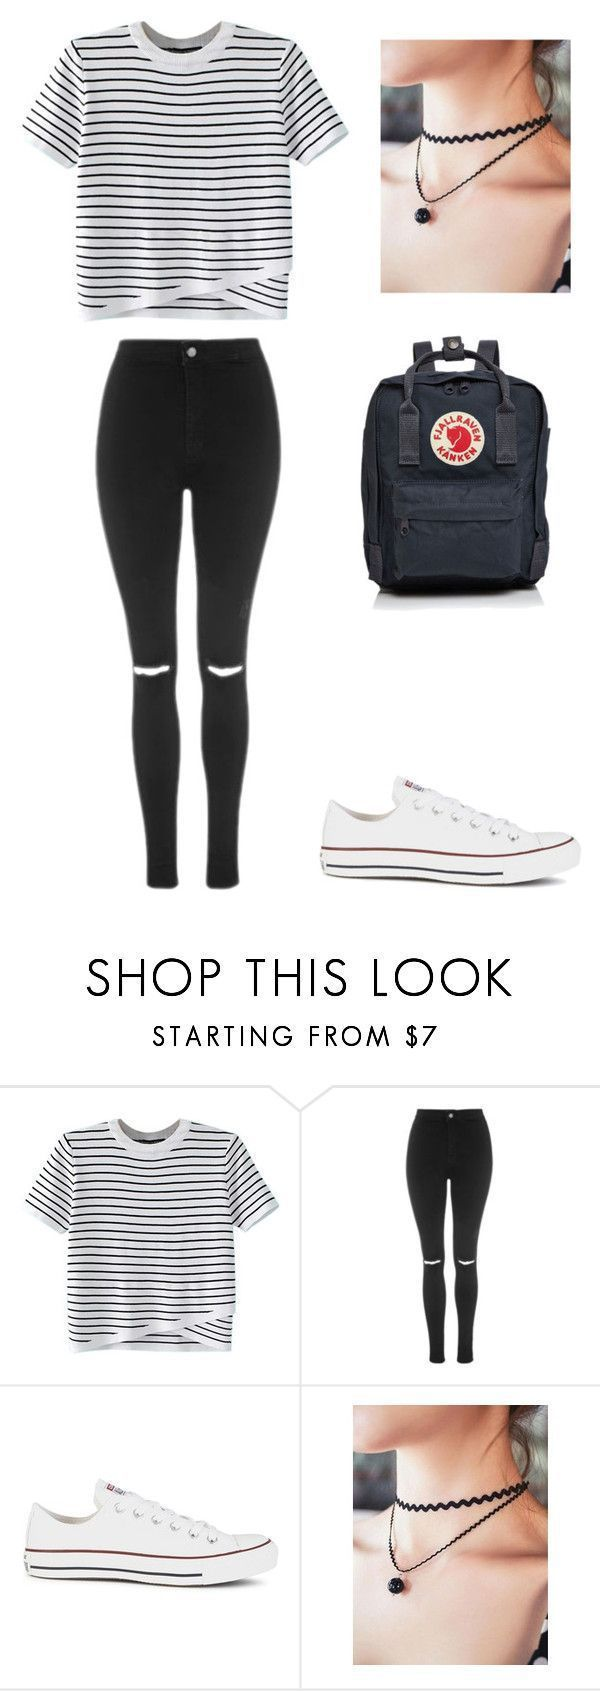 untitled 17 by sophiemoore45 on polyvore featuring withchic topshop converse and fj llr. Black Bedroom Furniture Sets. Home Design Ideas